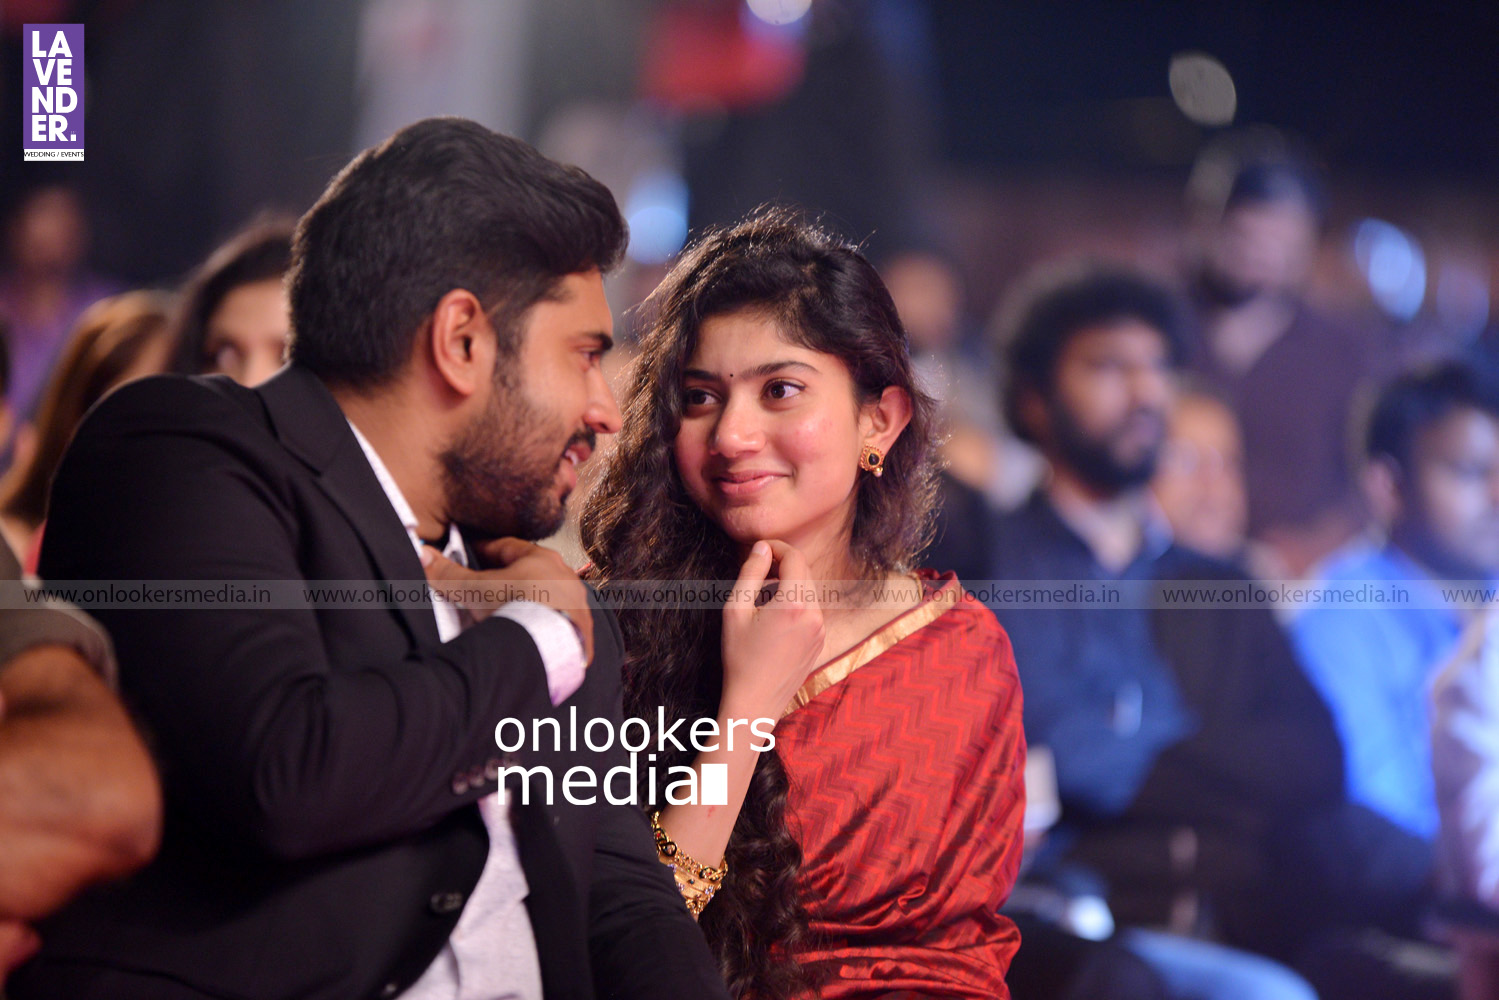 http://onlookersmedia.in/wp-content/uploads/2016/02/Nivin-Pauly-at-Asianet-Film-Award-2016-8.jpg